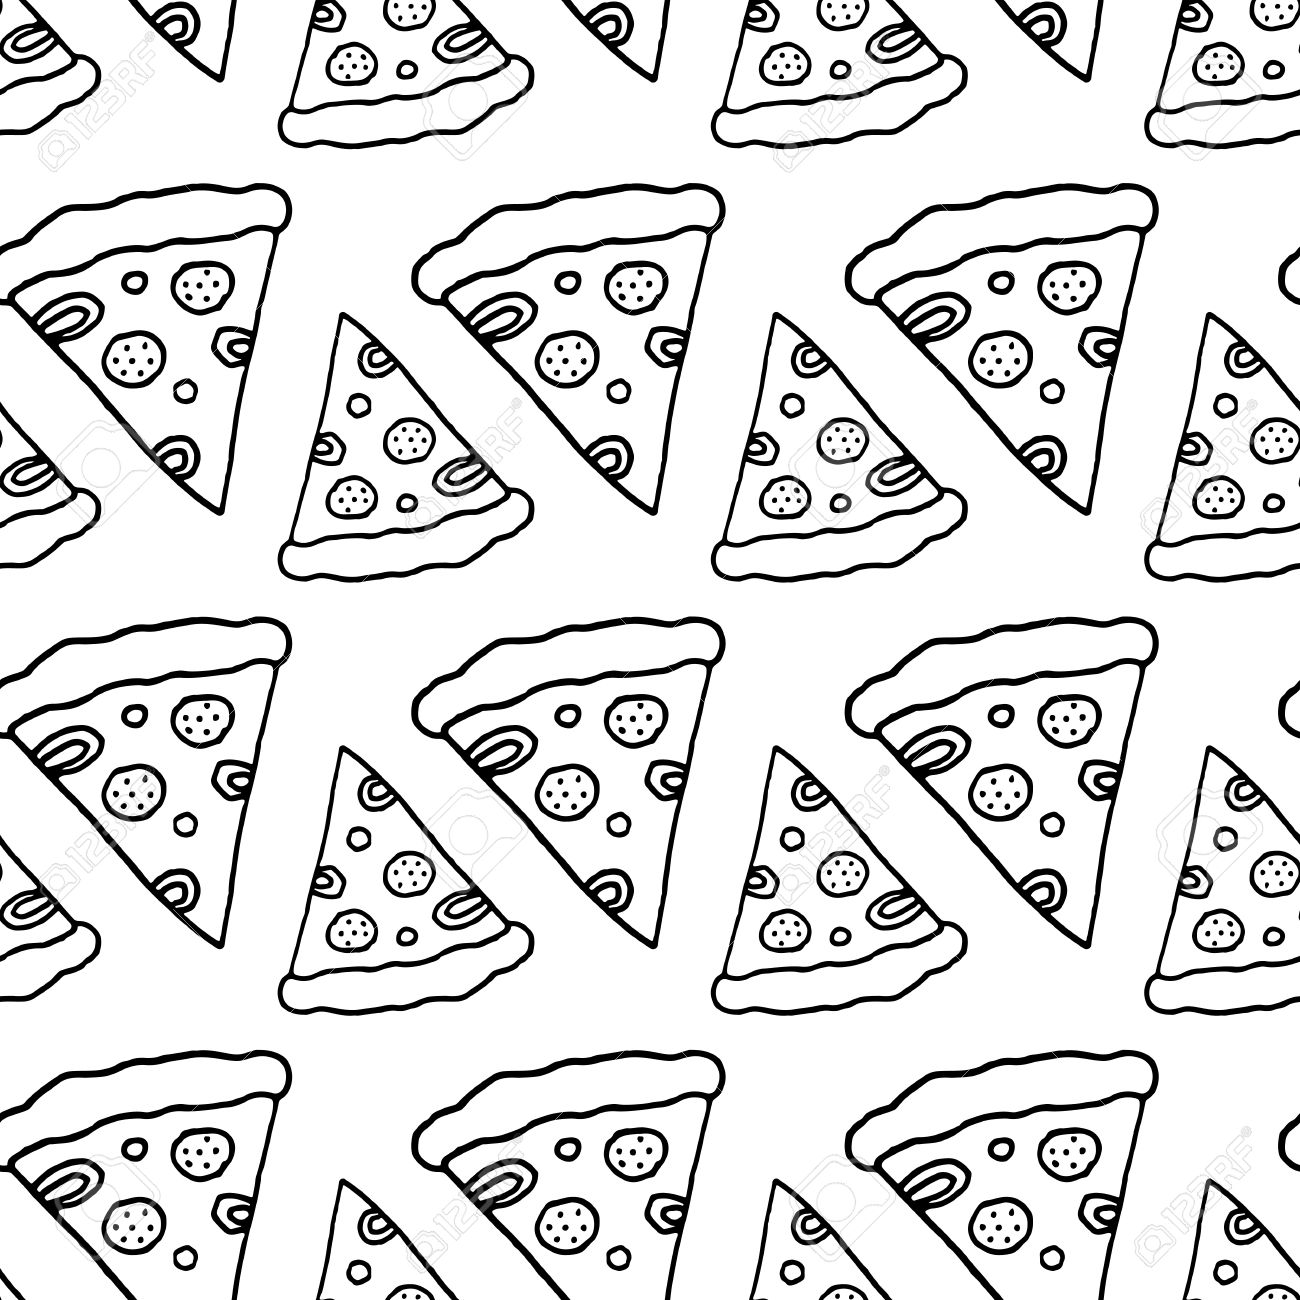 Stoff Pizza Muster Textile Pizza Muster Trendy Pizza Muster Nette